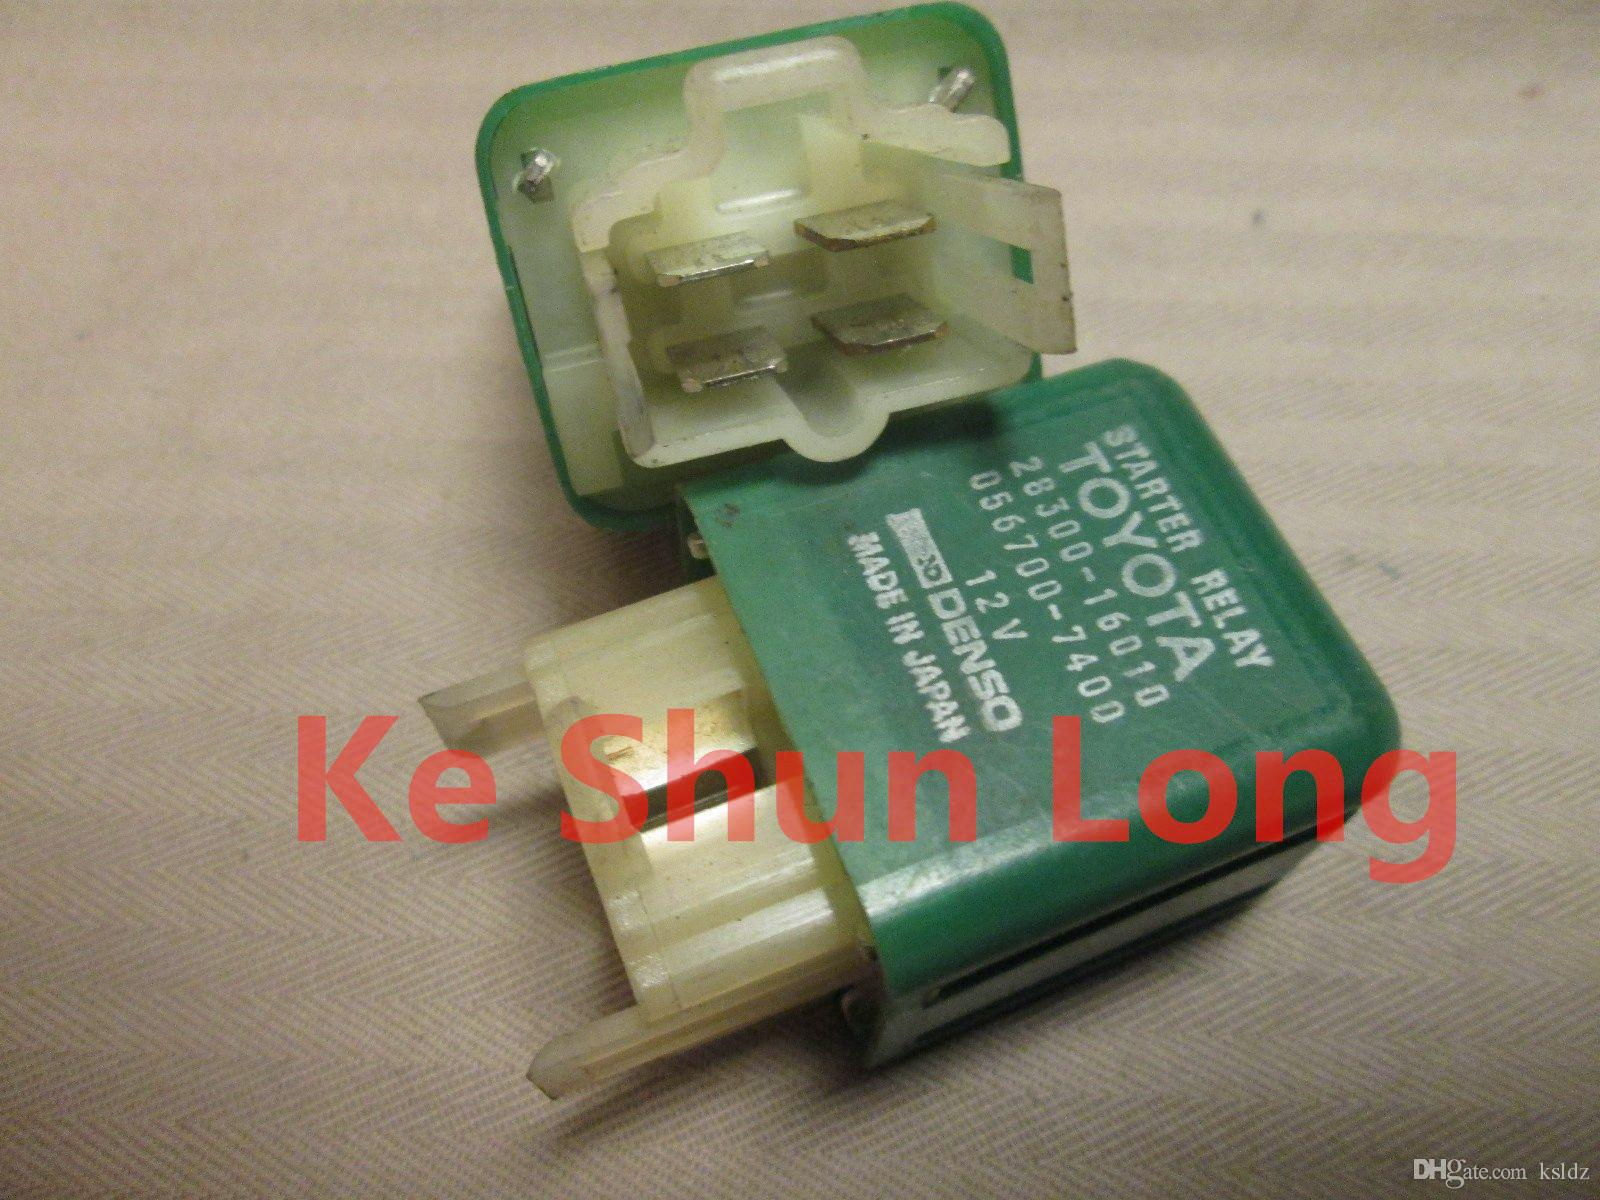 28300 16010 056700 7400 12vdc Automotive Relay Original New Solid State Brands Online With 3429 Piece On Ksldzs Store